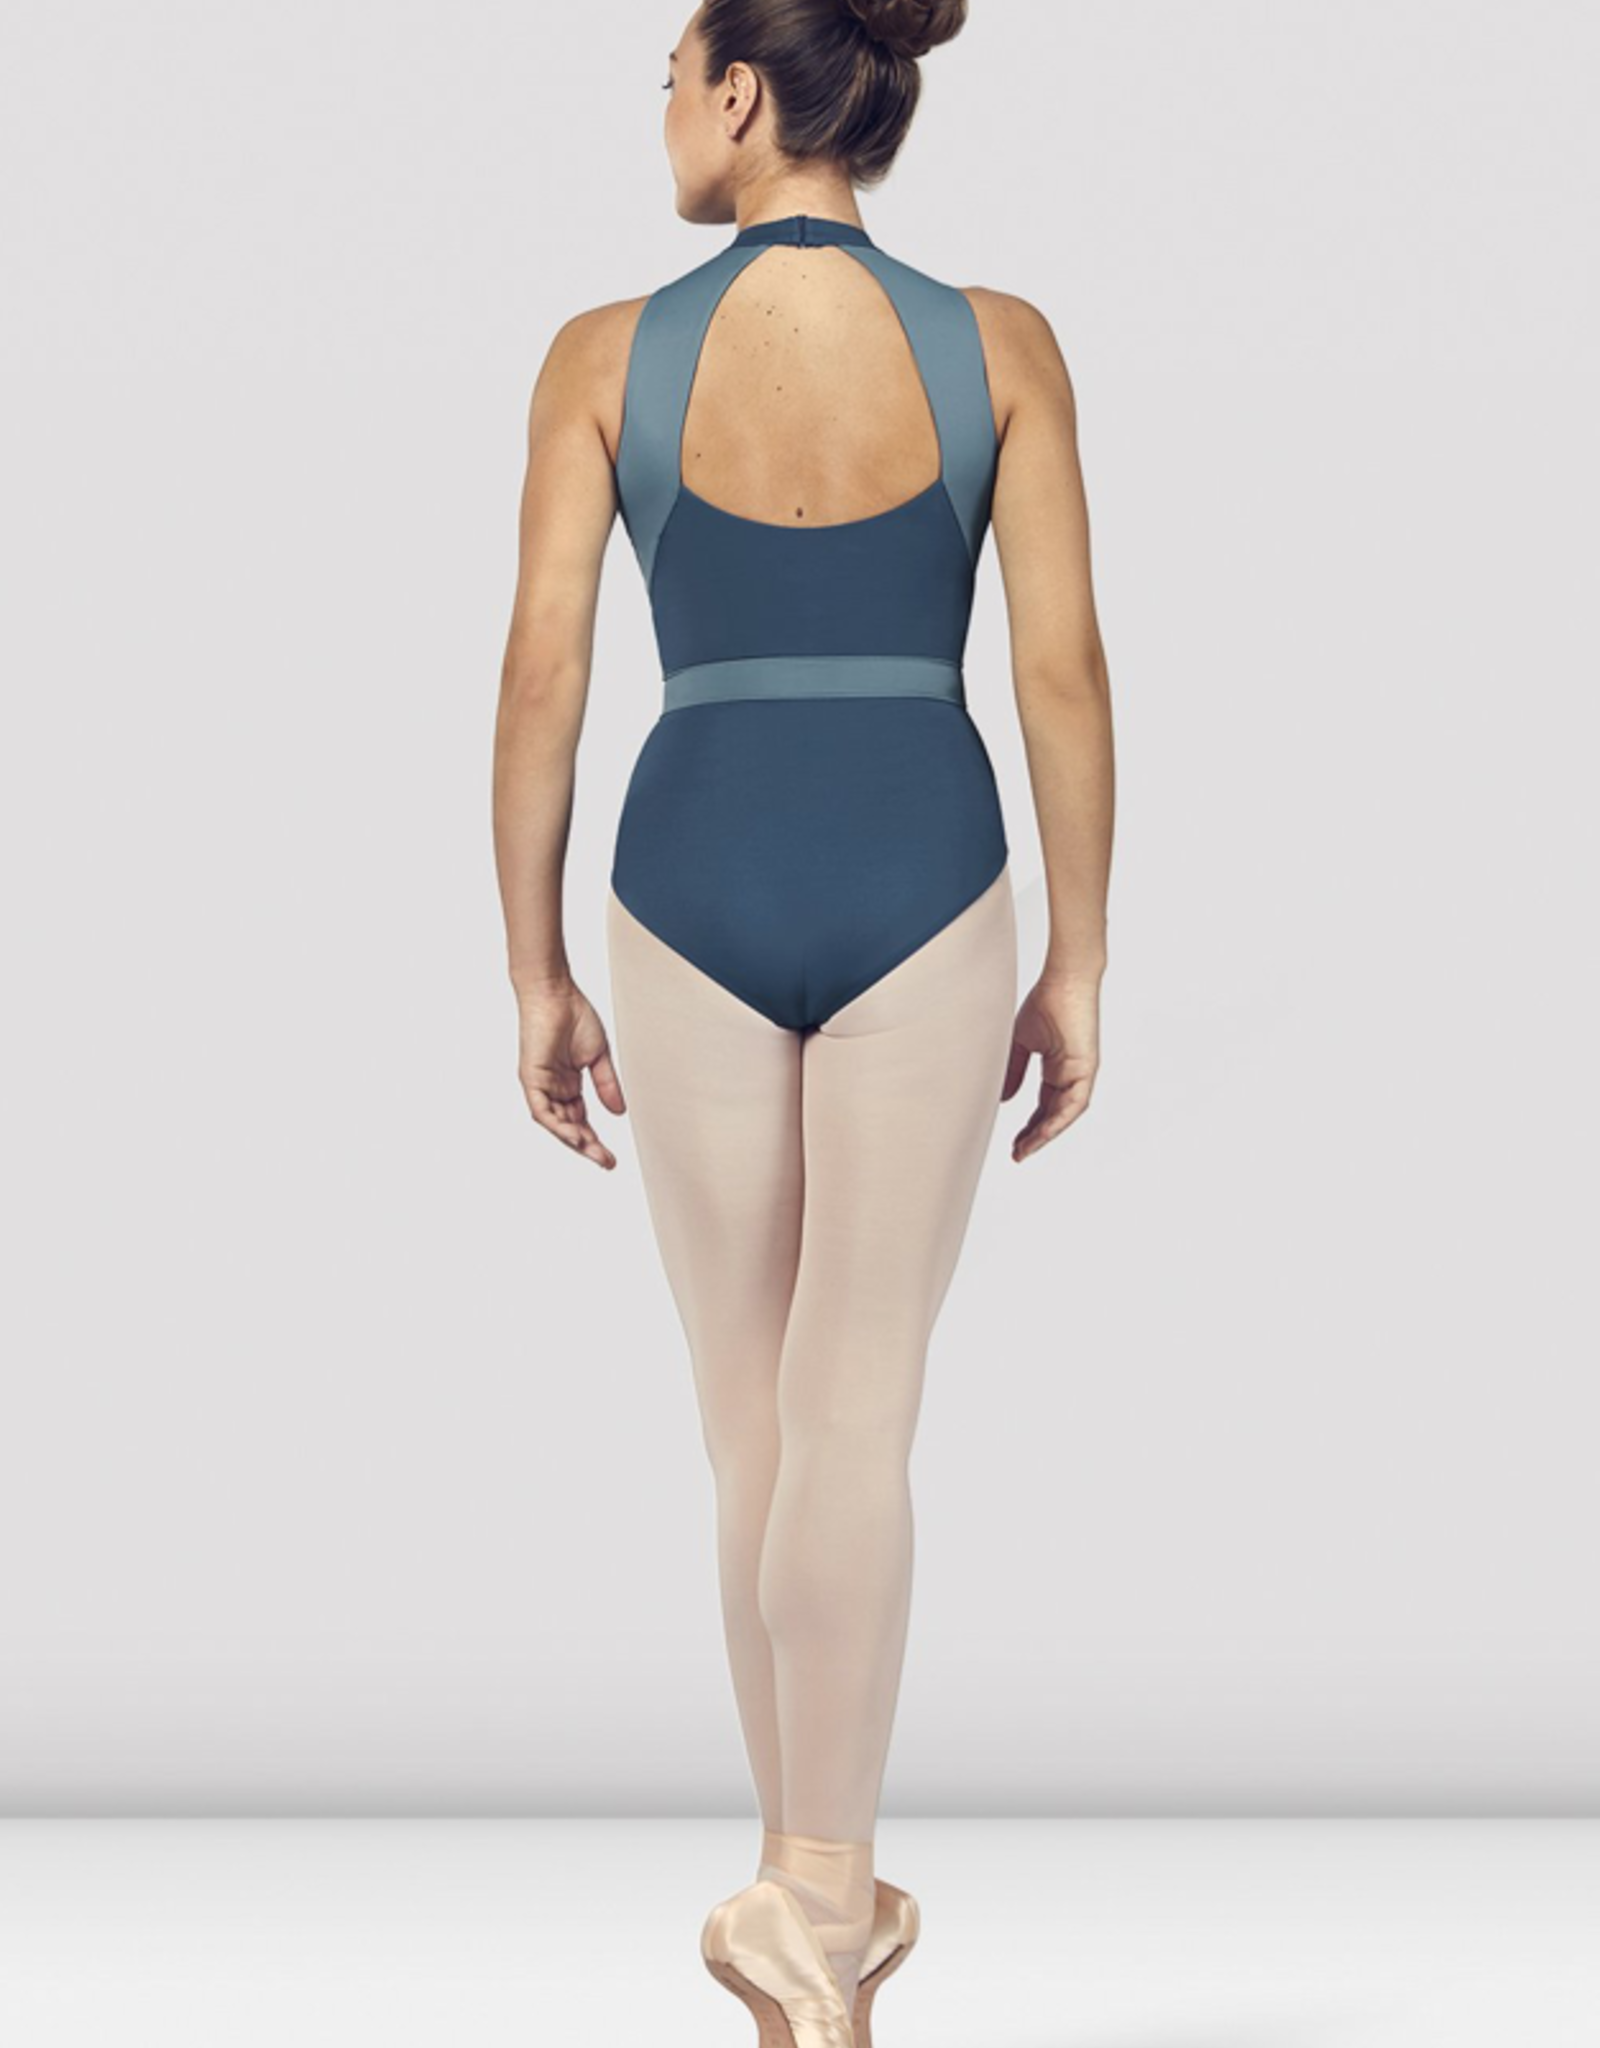 BLOCH ALIA HALTER NECK OPEN BACK TANK LEOTARD (L4965)